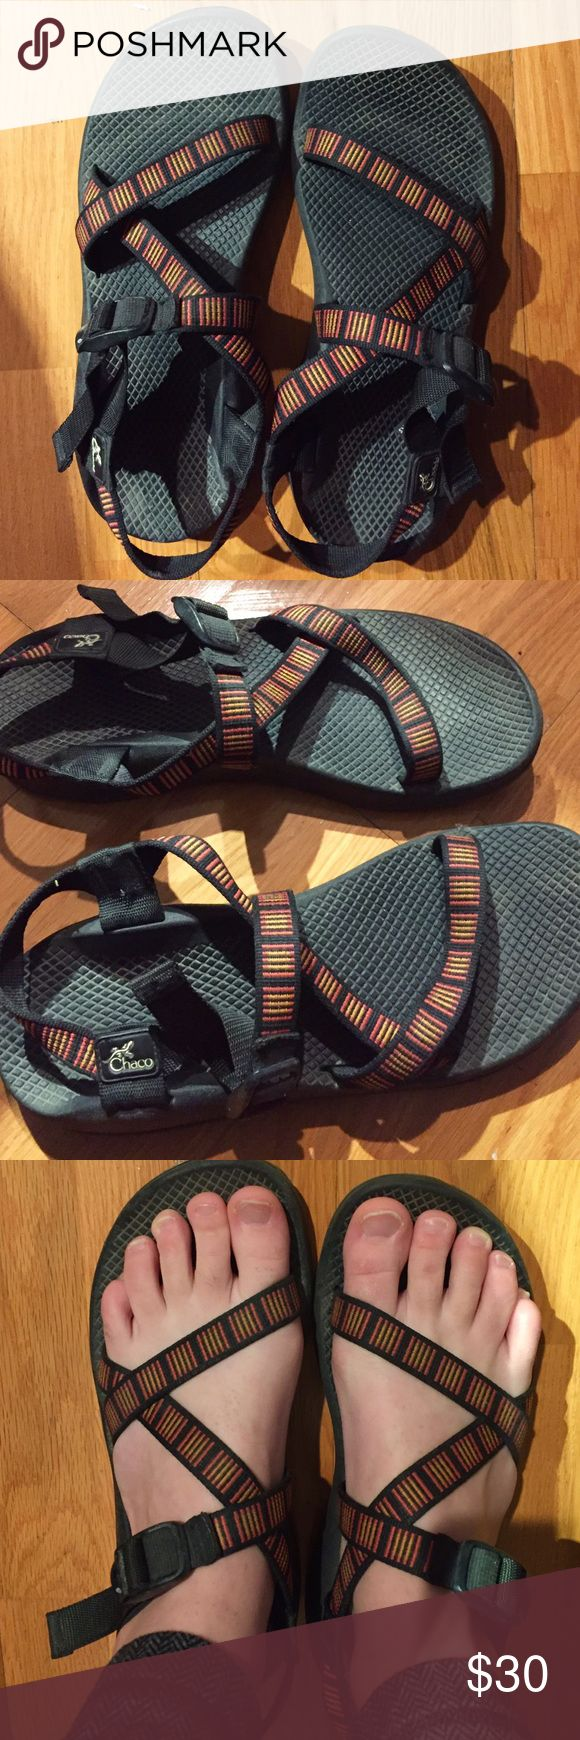 ⚡️SALE⚡️Women's chacos Worn for one summer. Great for summer hikes or as water shoes. The soles and straps are still in excellent condition. Selling because they are too big. (I don't have pregnant feet anymore 😉) Chaco Shoes Sandals